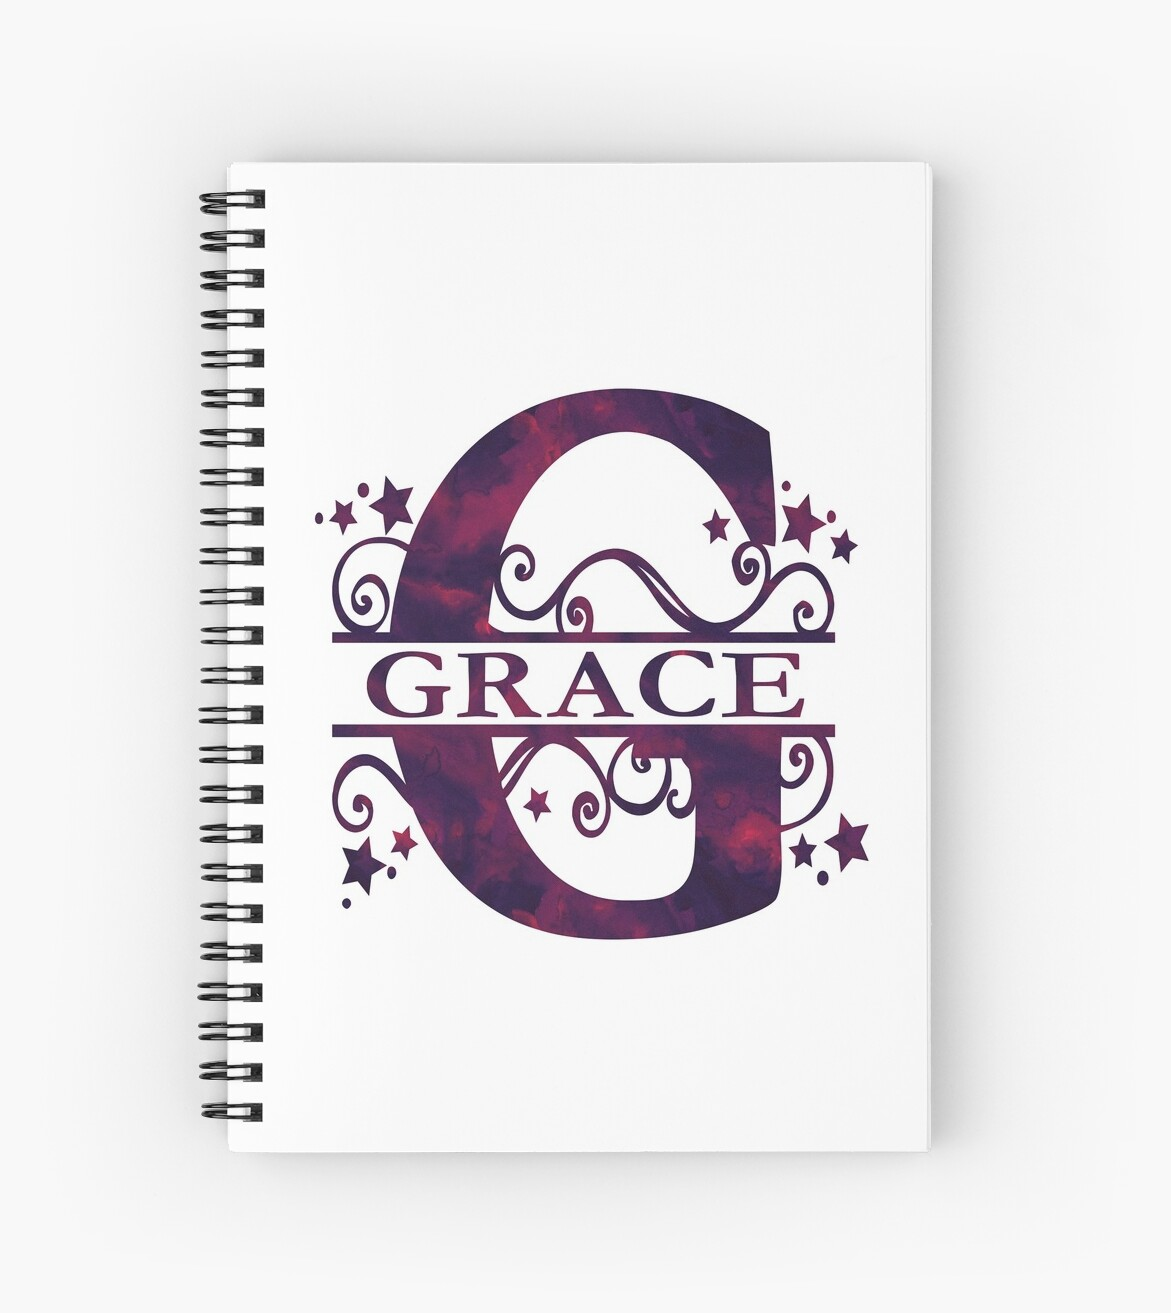 Grace | Girls Name and Monogram in Dark Purple by PraiseQuotes